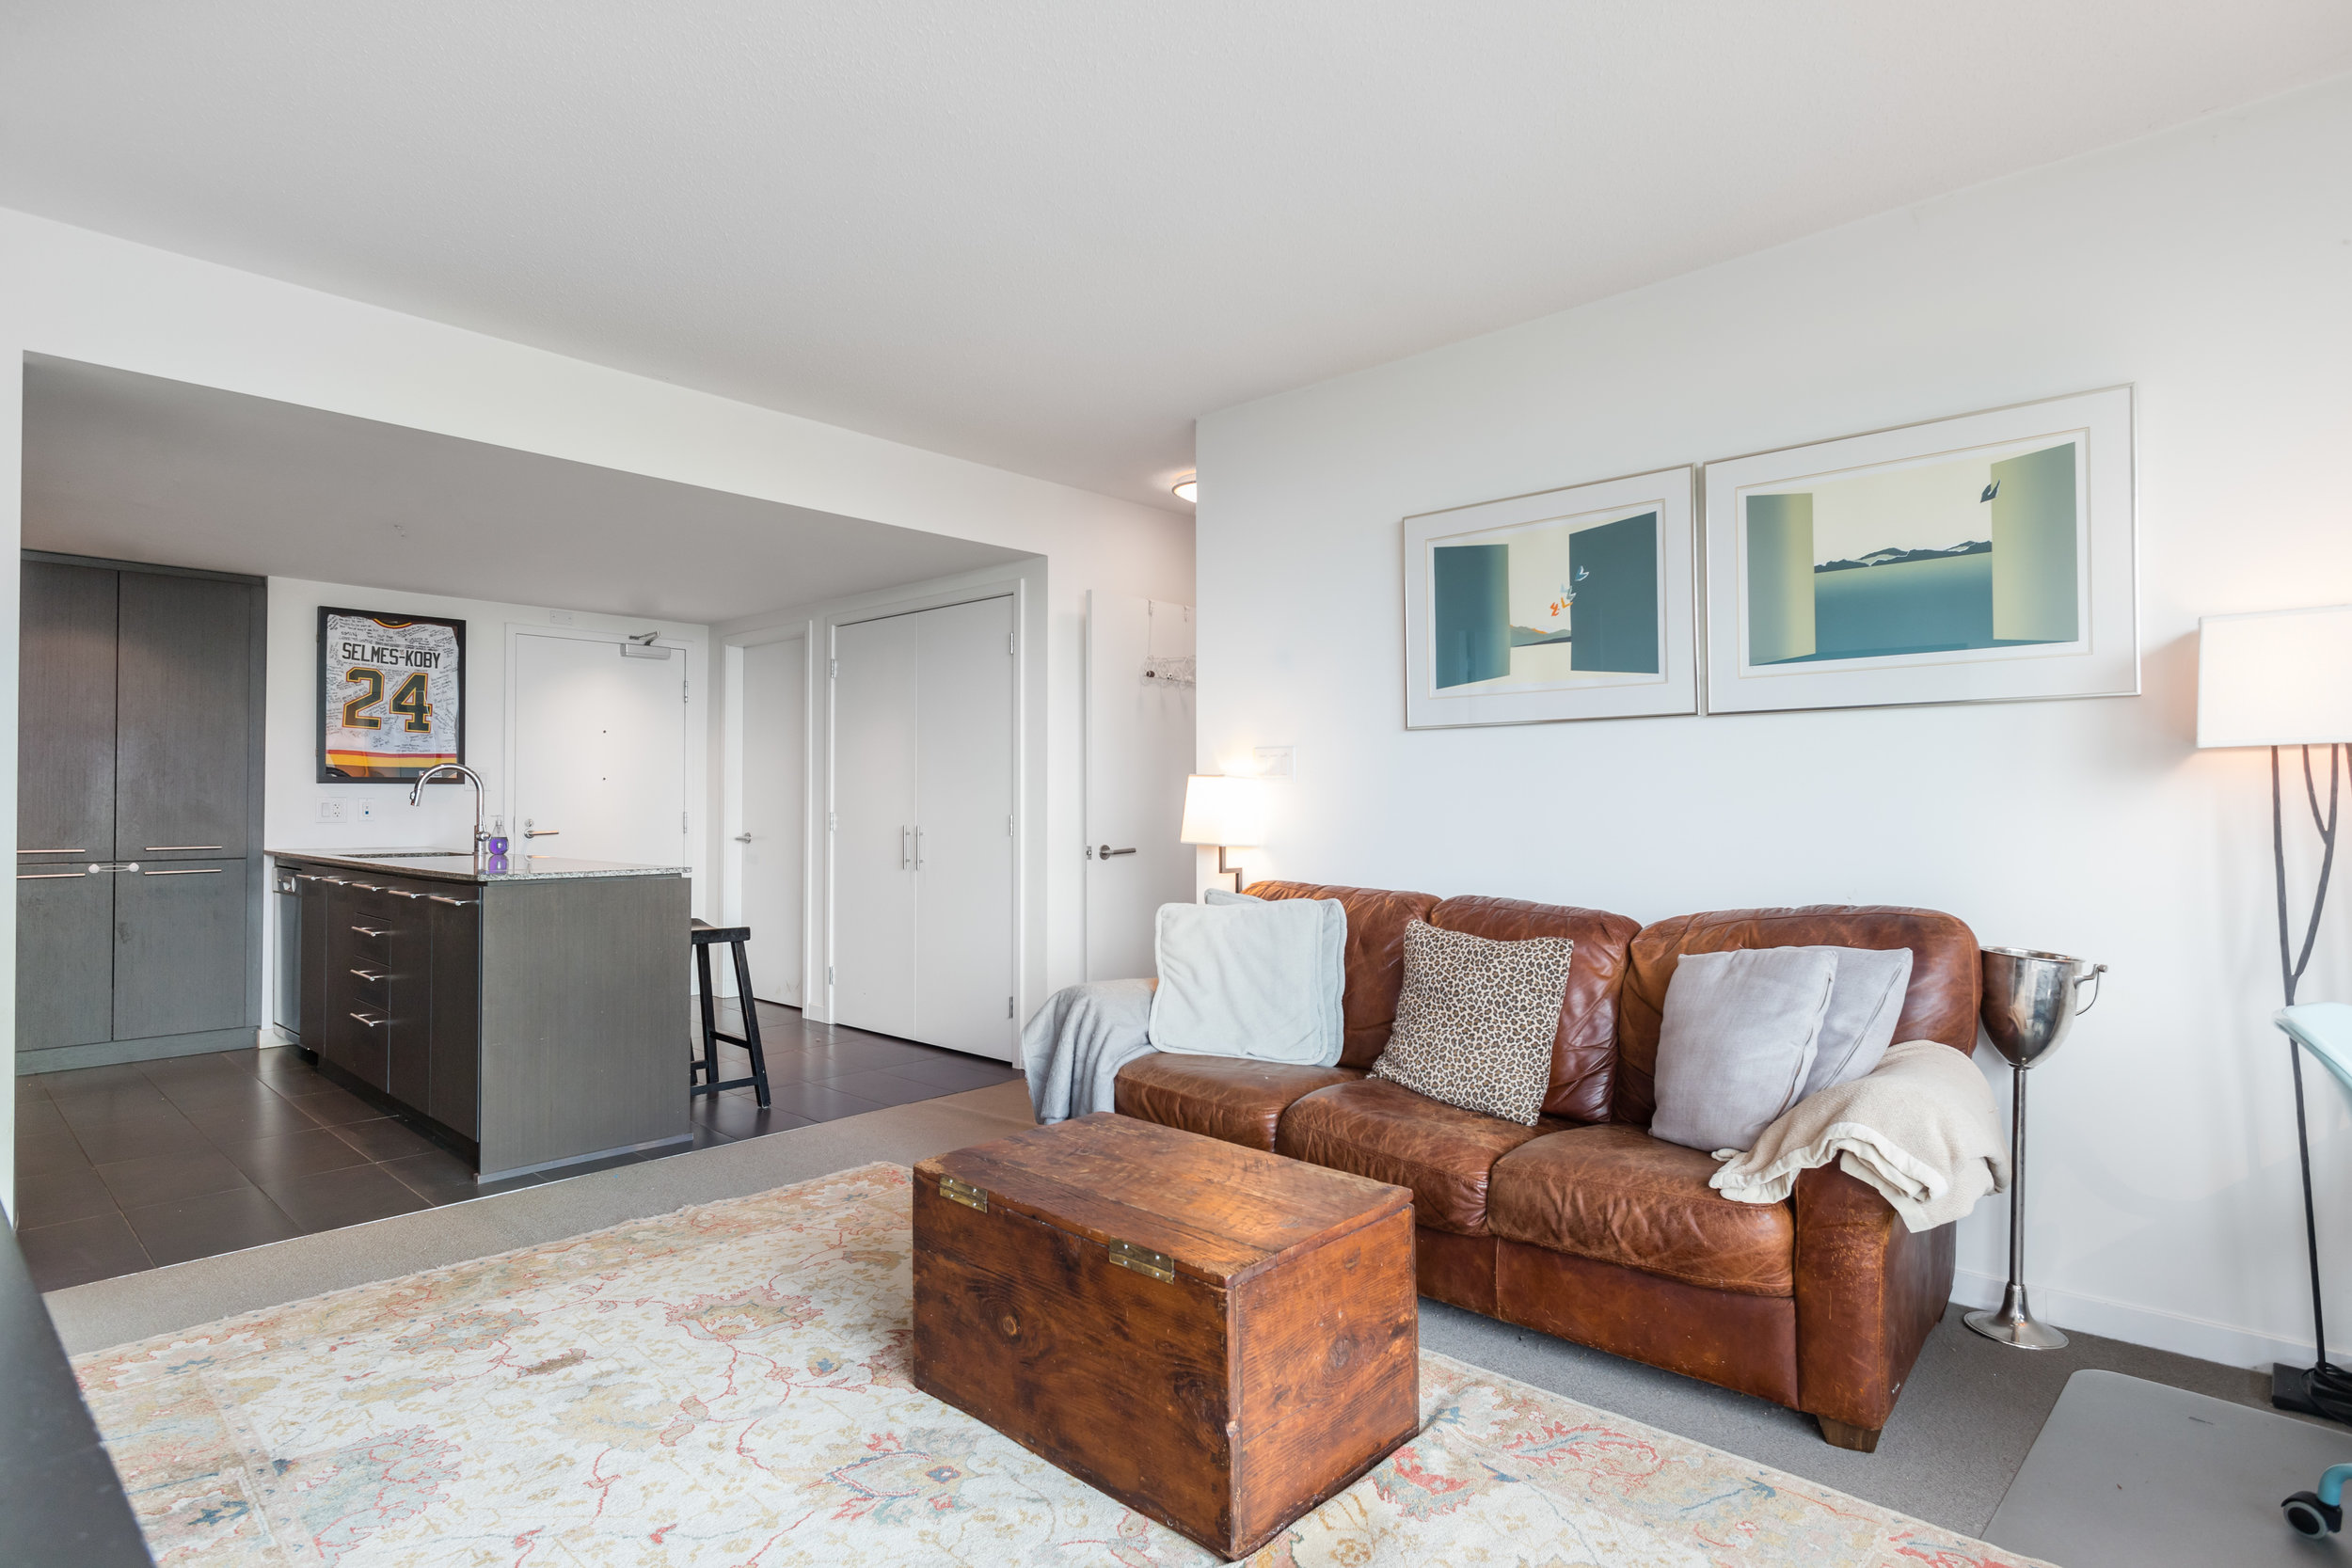 Crossroads - #409-522 West 8th Avenue(JUST SOLD)$829,000 | 2 Bed | 2 Bath